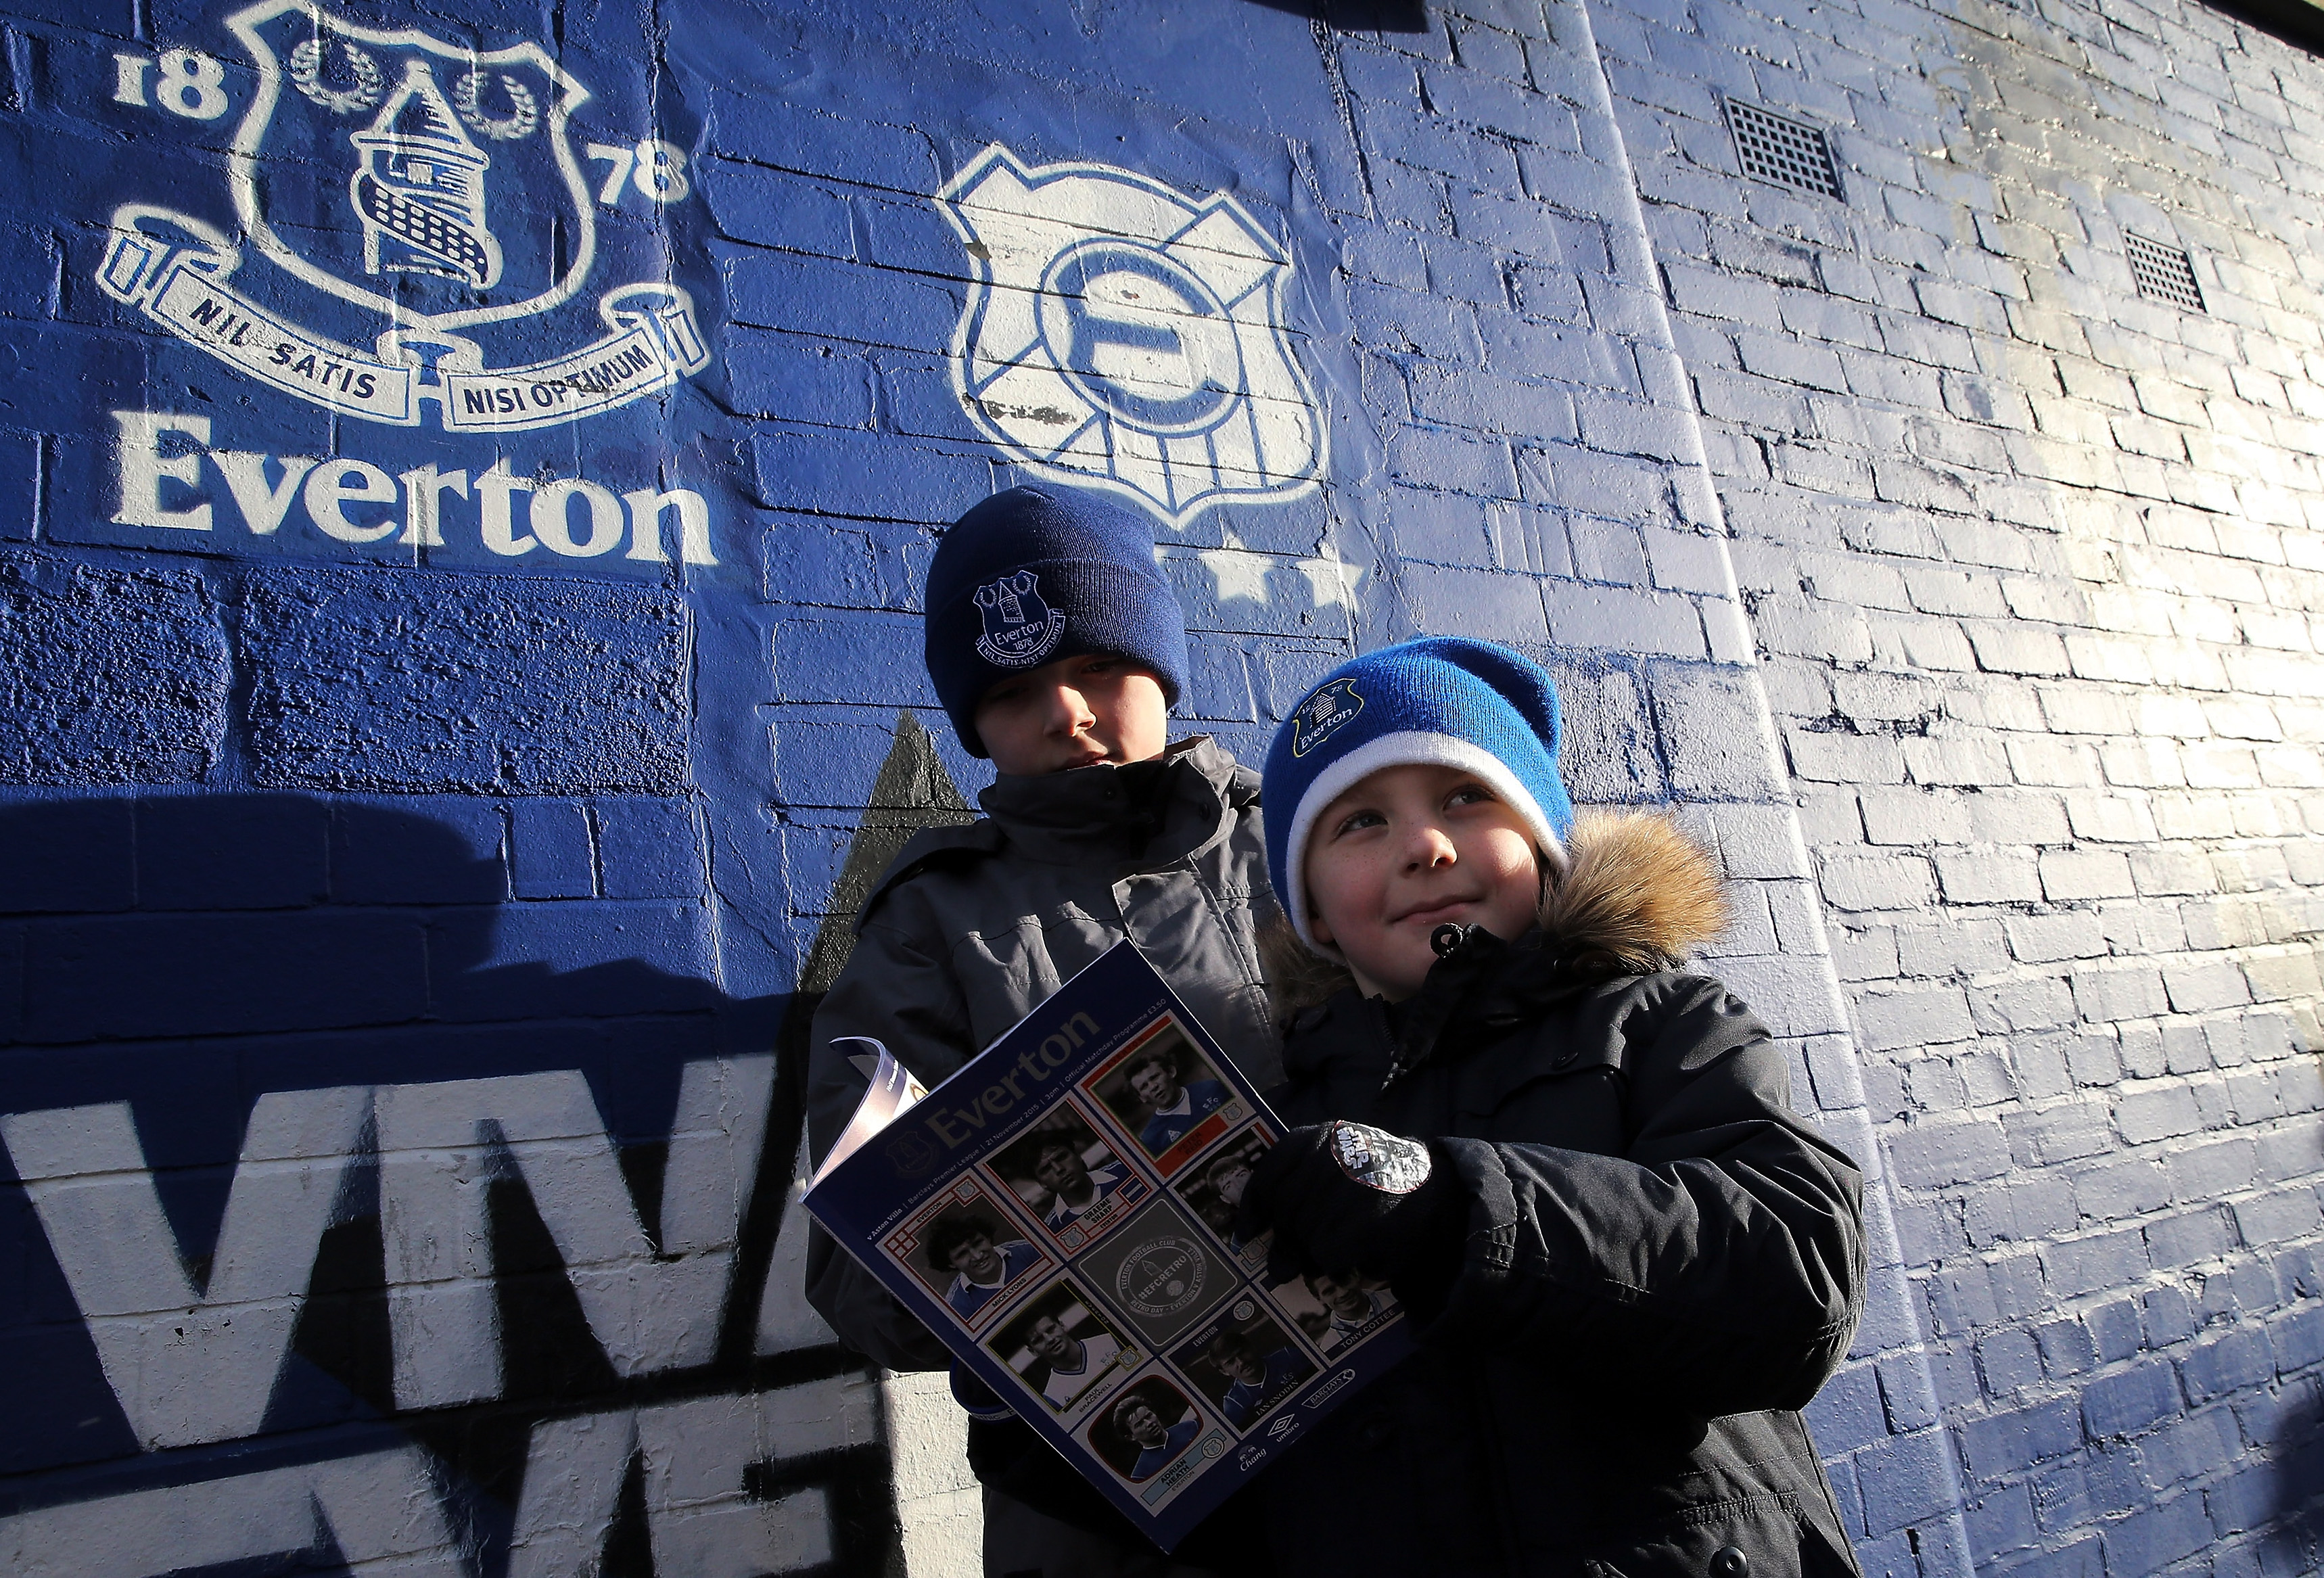 Young Everton fans reading a match programme